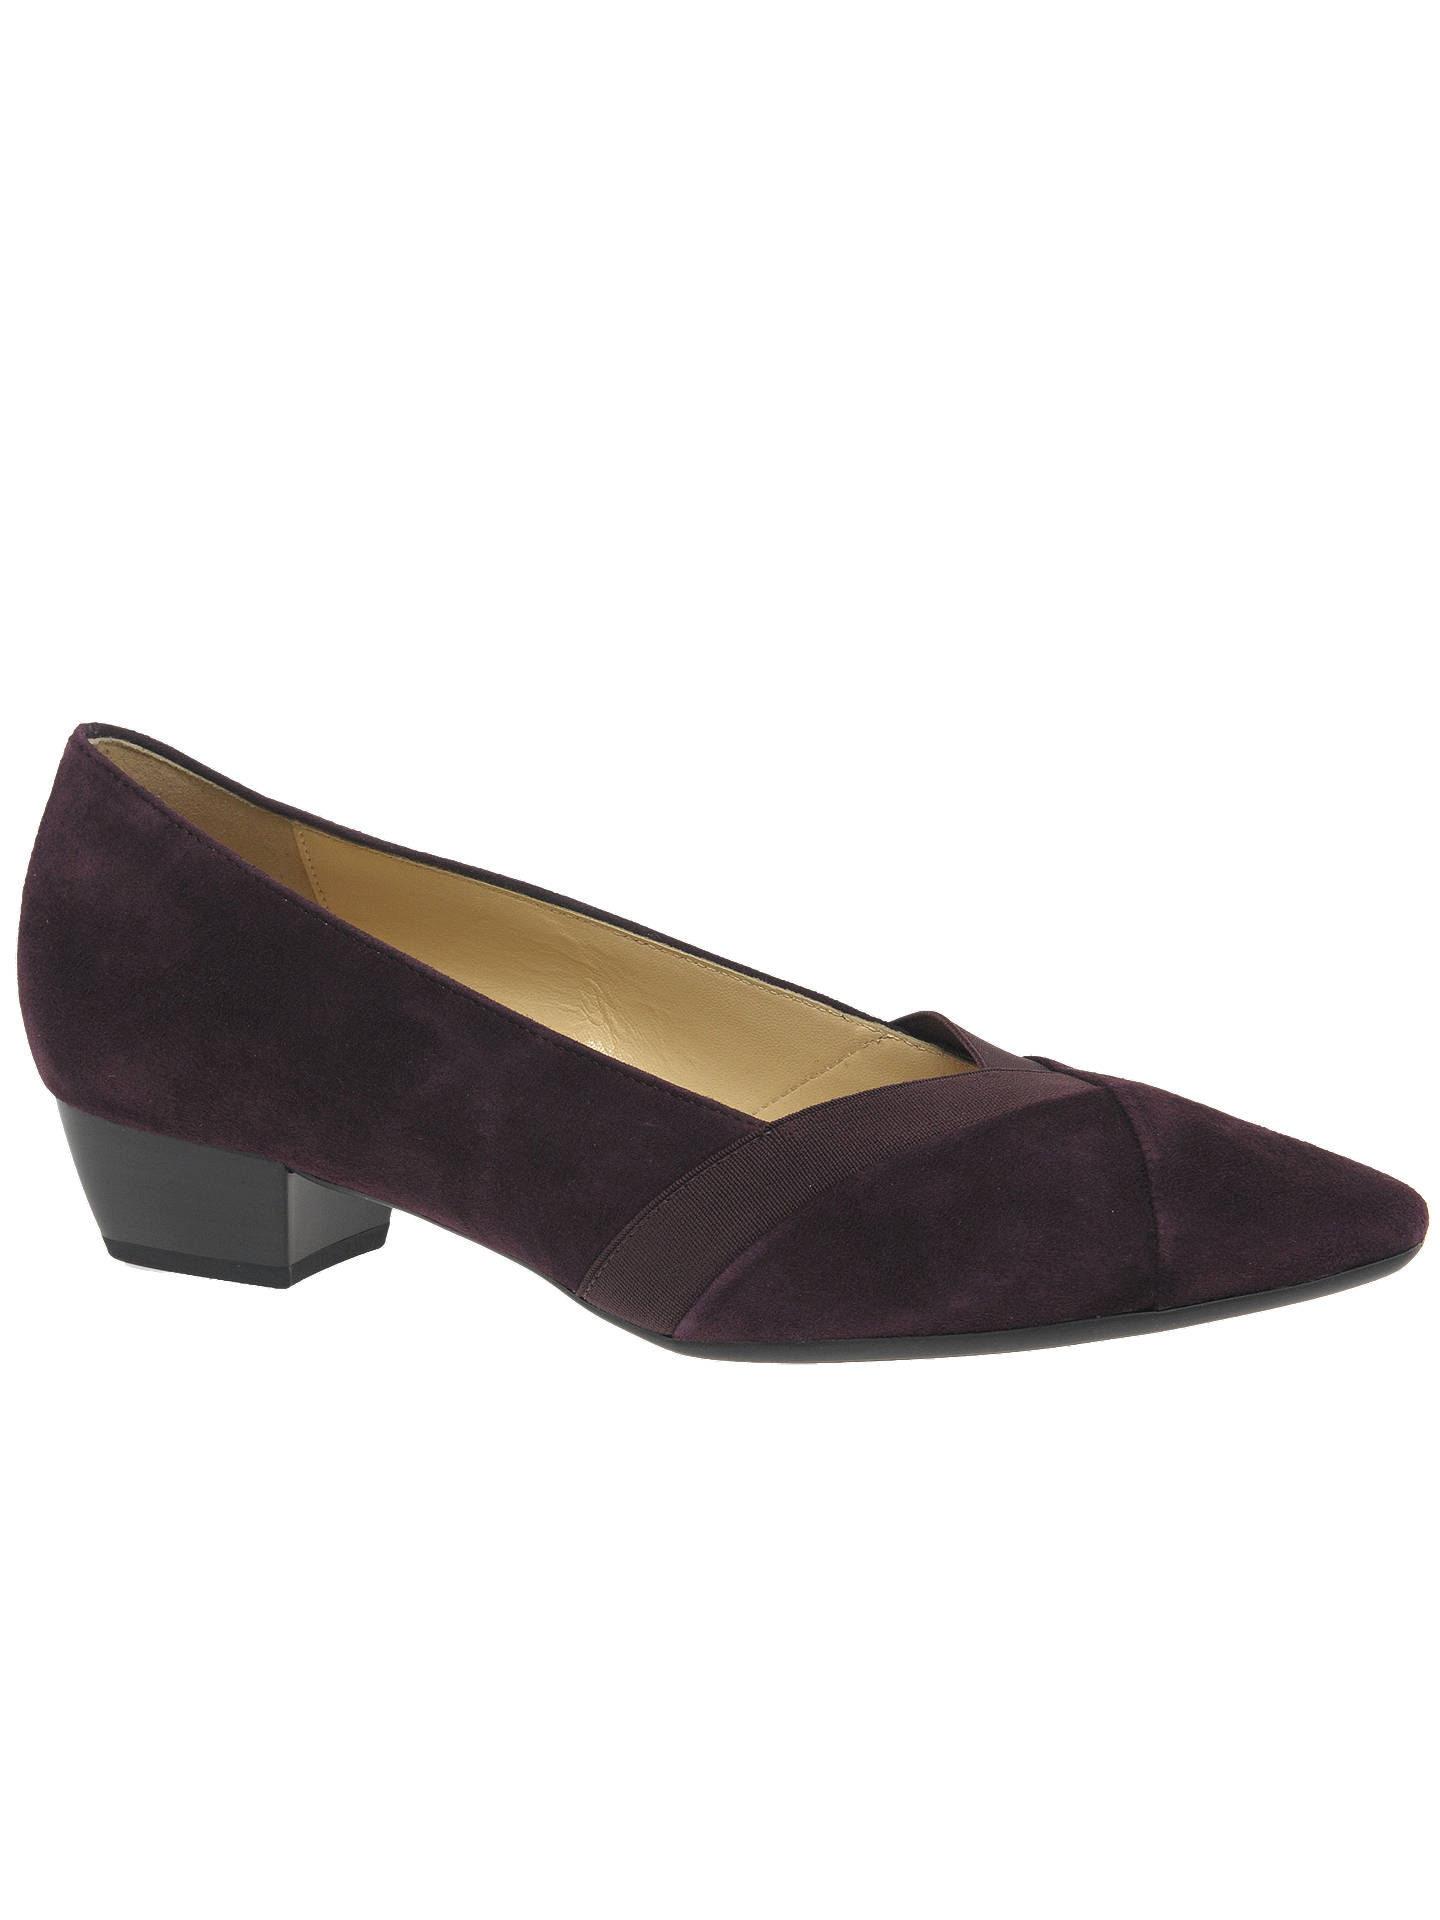 783b7c24f46 Gabor Opera Pointed Low Block Heel Court Shoes at John Lewis   Partners